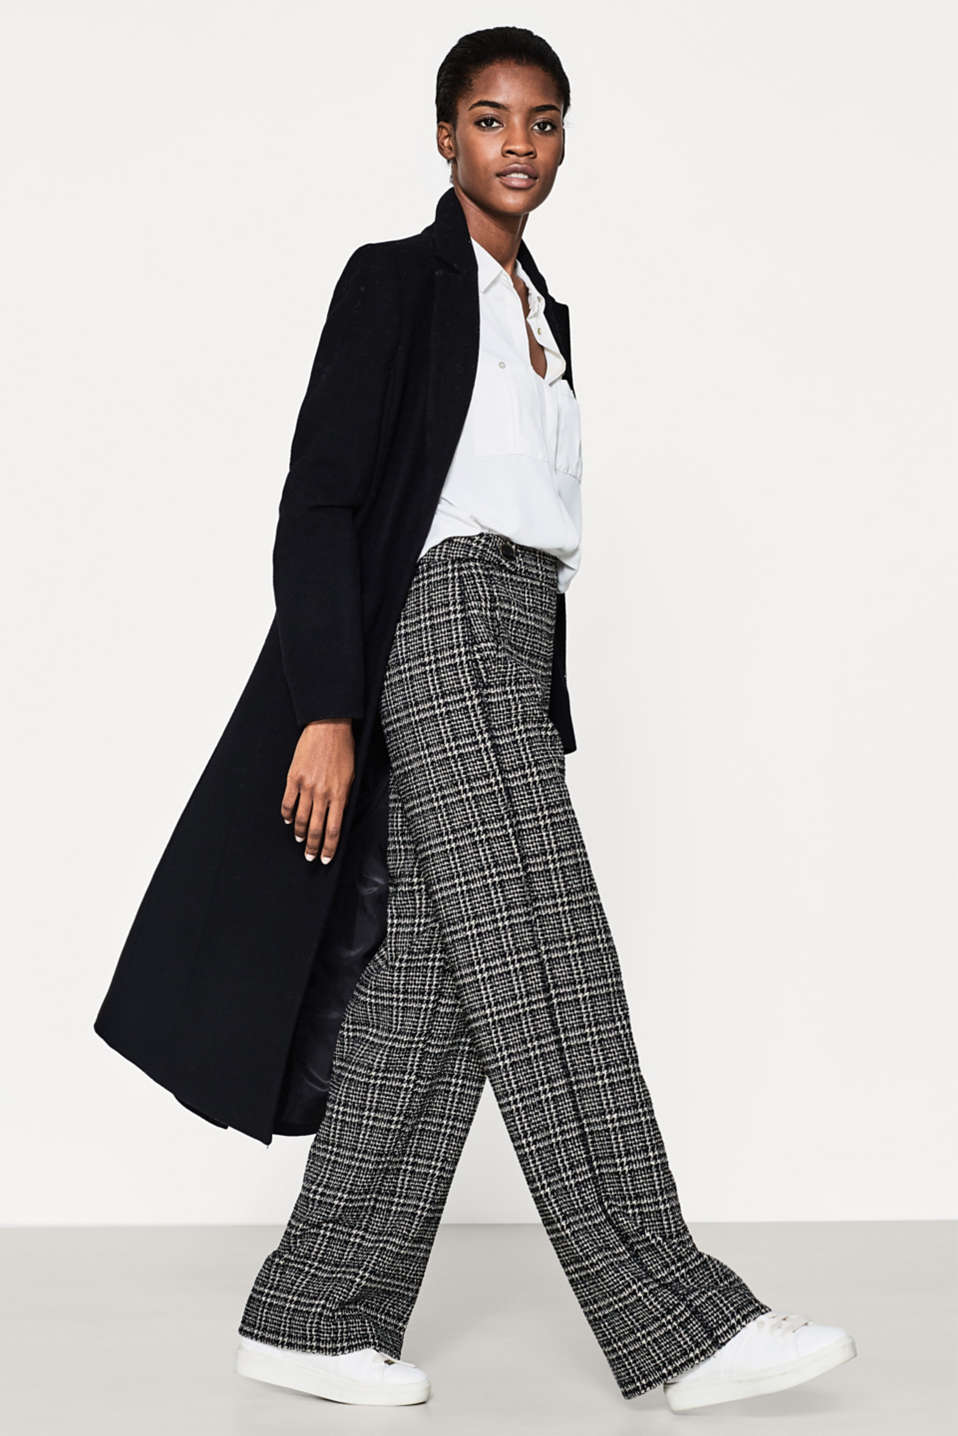 Bouclé trousers in an extra-wide cut